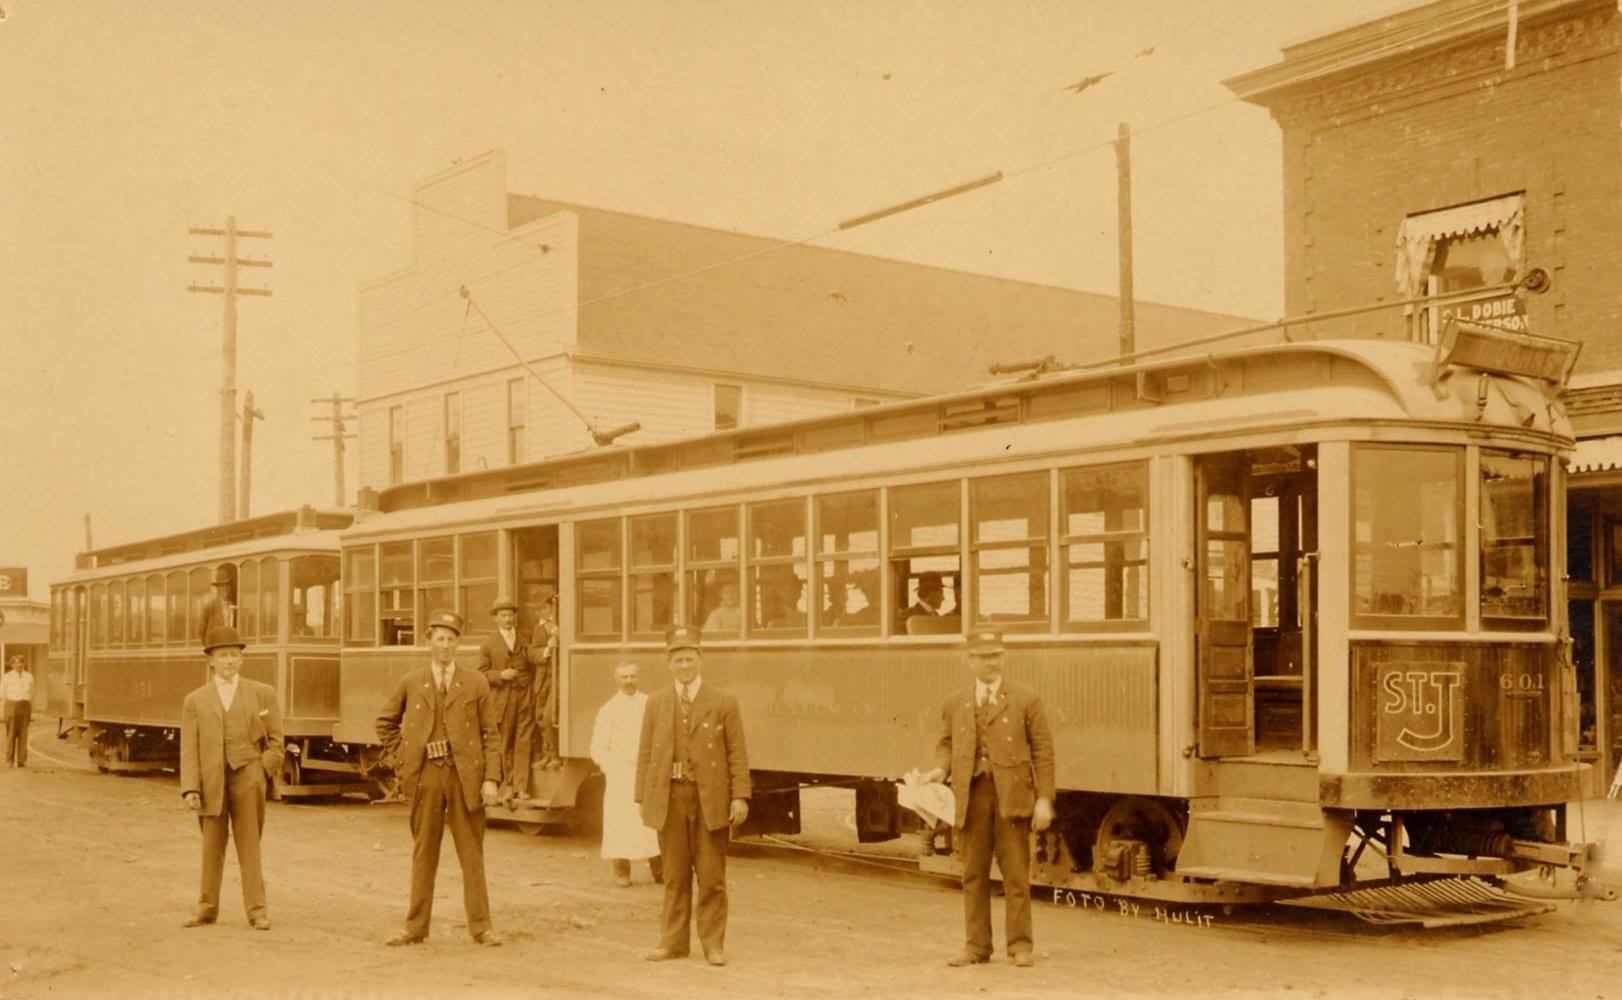 Car 601 of St Johns  at Burlington and Jersey (Lombard)